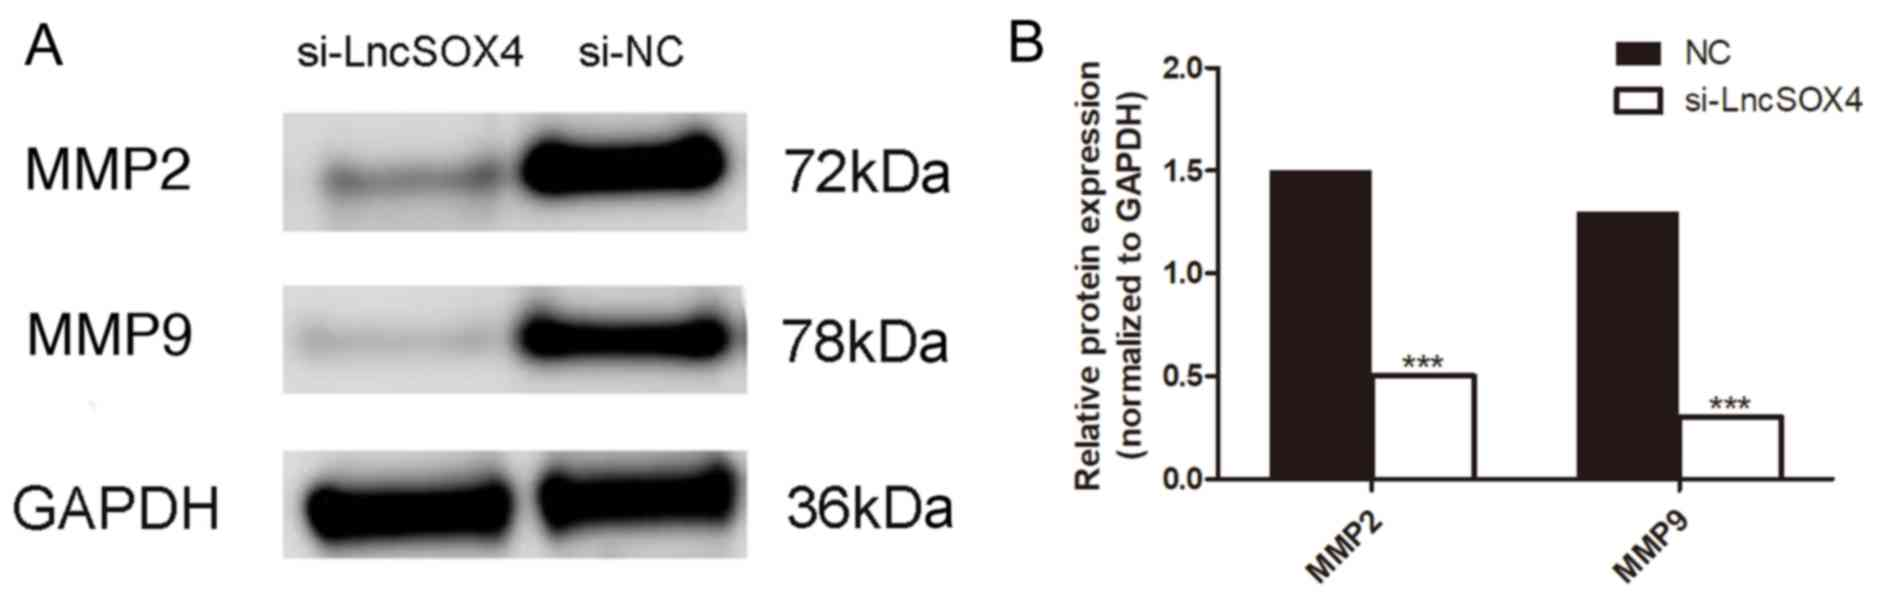 LncSOX4 serves an oncogenic role in the tumorigenesis of epithelial ...